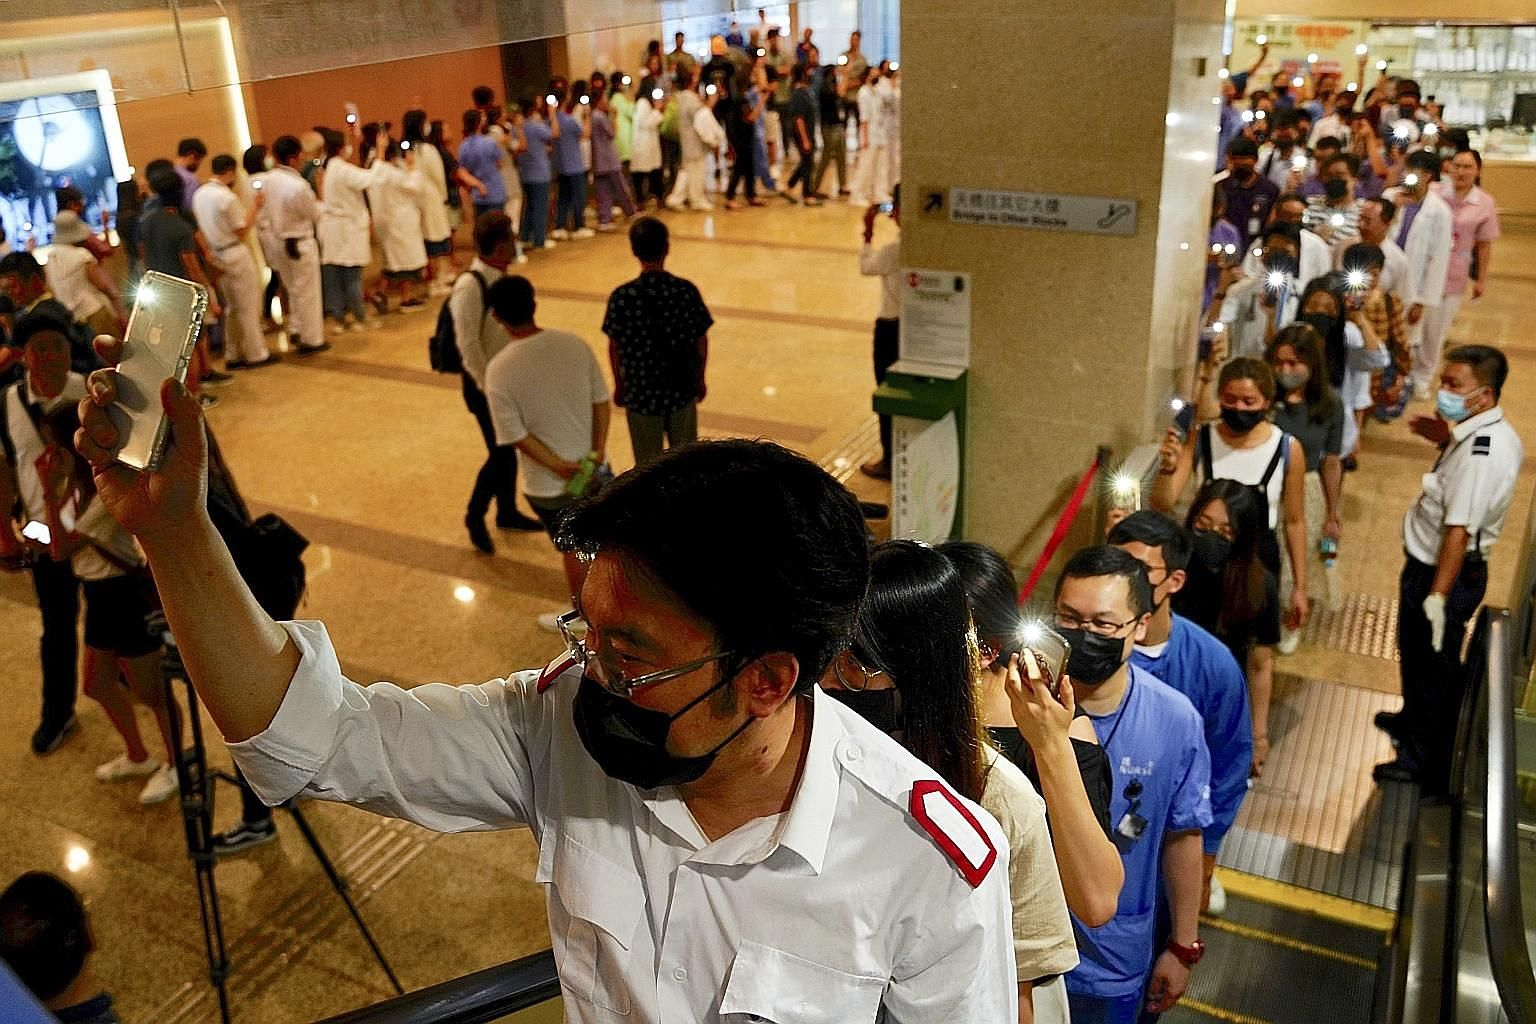 Medical workers protesting in the foyer of Prince of Wales Hospital in Hong Kong yesterday as the stand-off with the city's government continued. PHOTO: ASSOCIATED PRESS